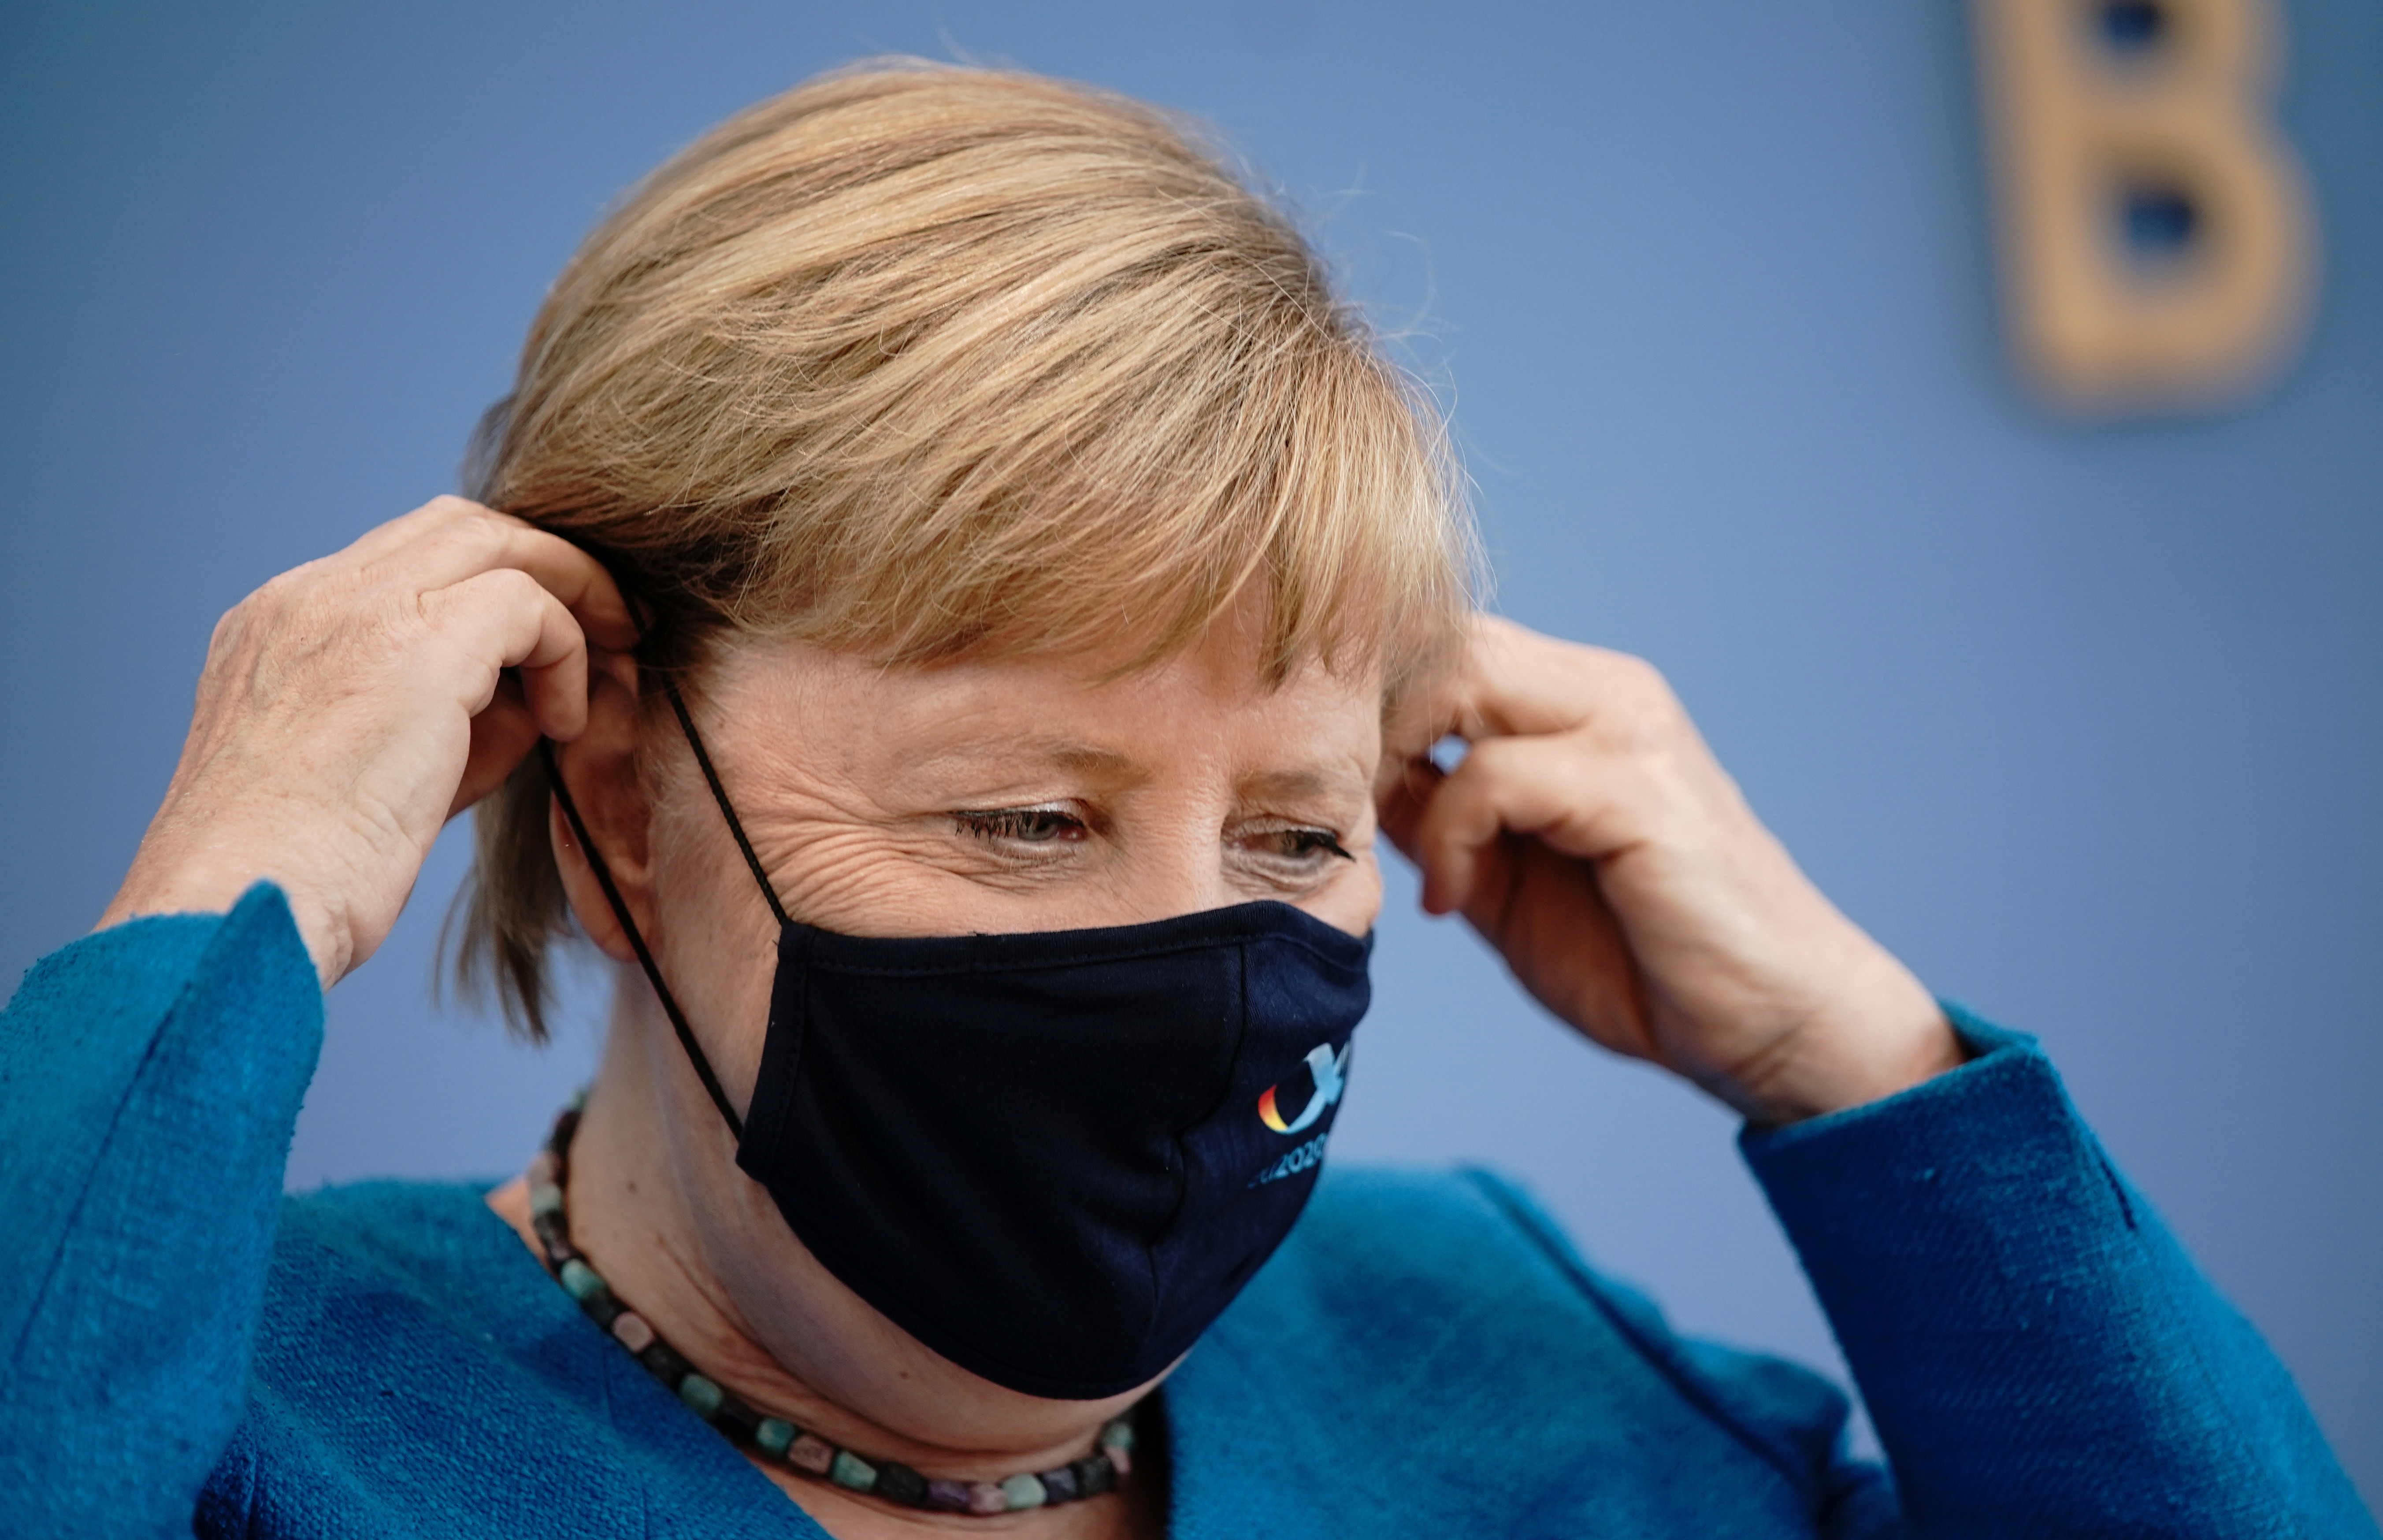 German Chancellor Angela Merkel wears a mask as she leaves her annual summer news conference during the outbreak of the coronavirus disease (COVID-19) in Berlin, Germany, August 28, 2020.      Michael Kappeler/Pool via REUTERS - RC2ZMI9CHMUB